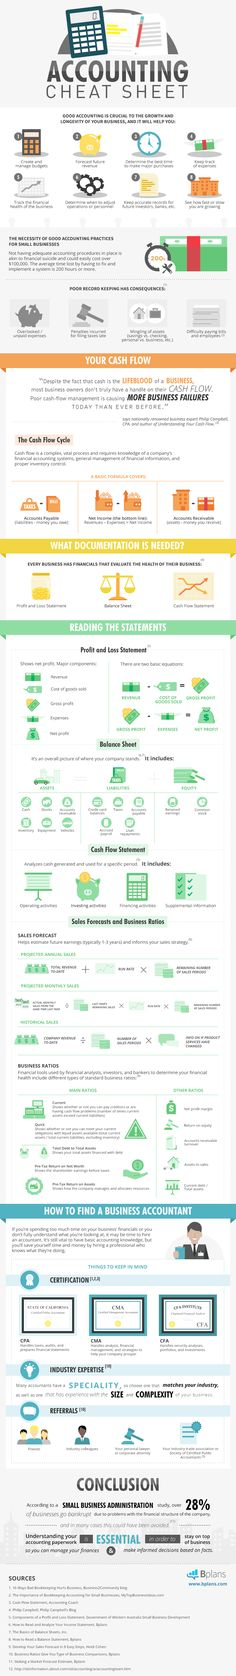 Infographic Learn How to Budget in 5 Minutes or Less - WalletWin